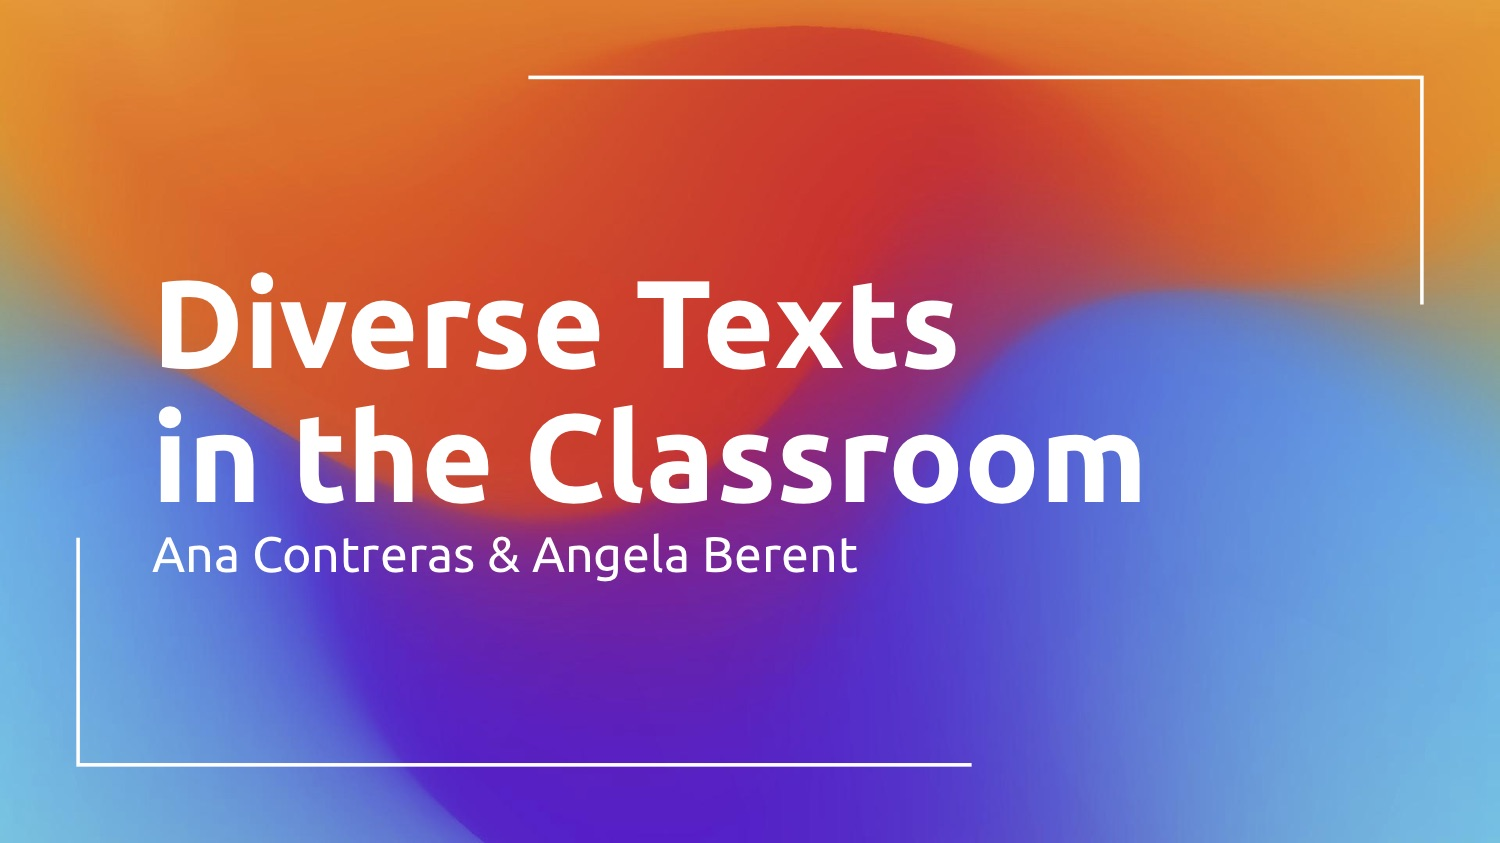 Diverse Texts in the Classroom Cover Slide